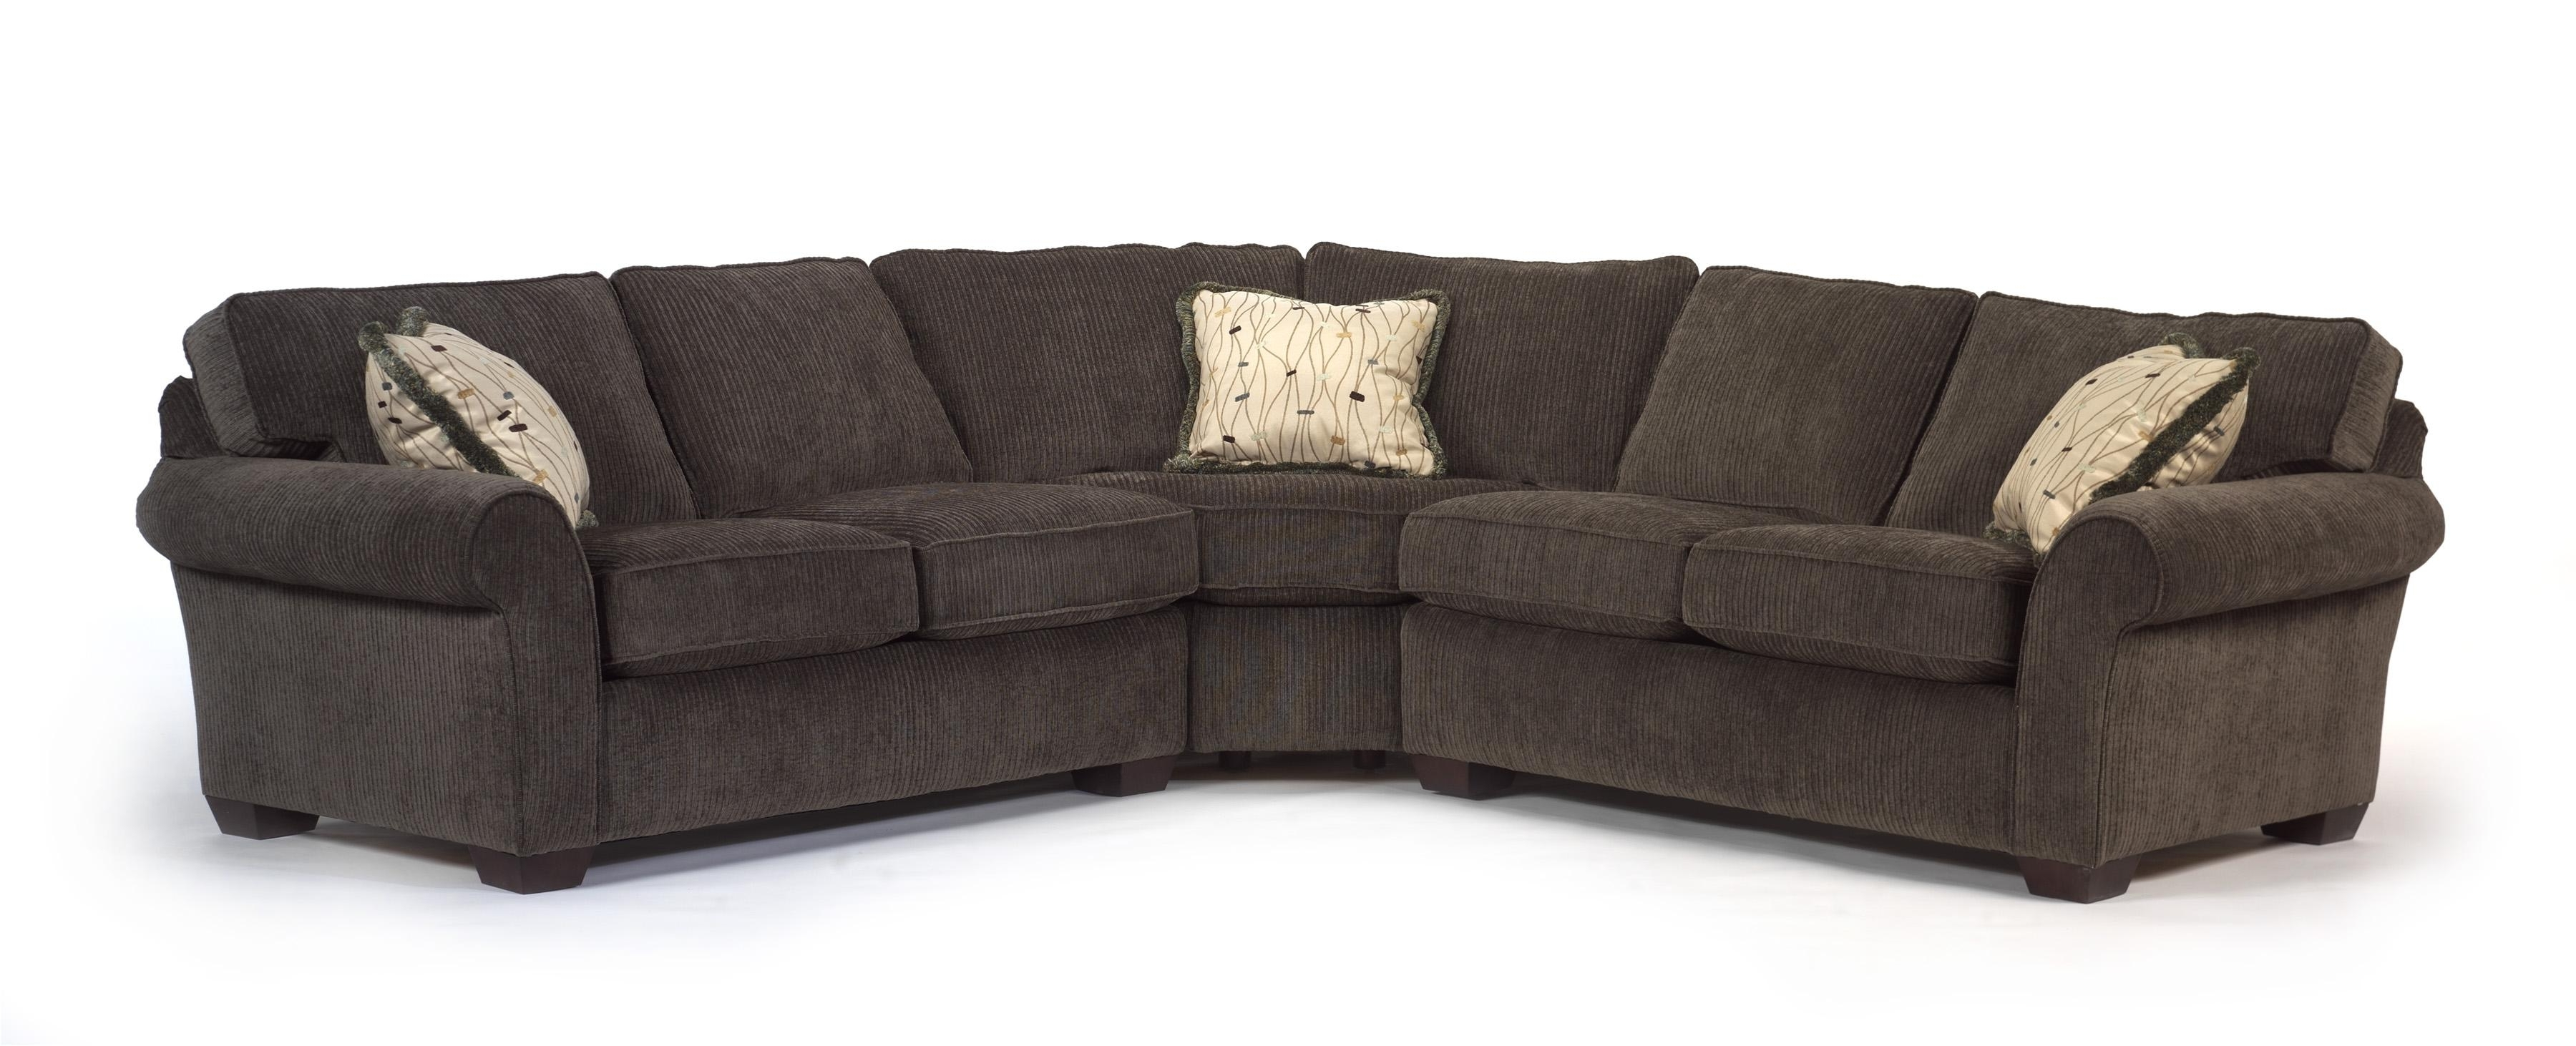 Flexsteel Vail Corner Sectional Sofa – Ahfa – Sofa Sectional Throughout Trendy Kansas City Sectional Sofas (View 7 of 15)